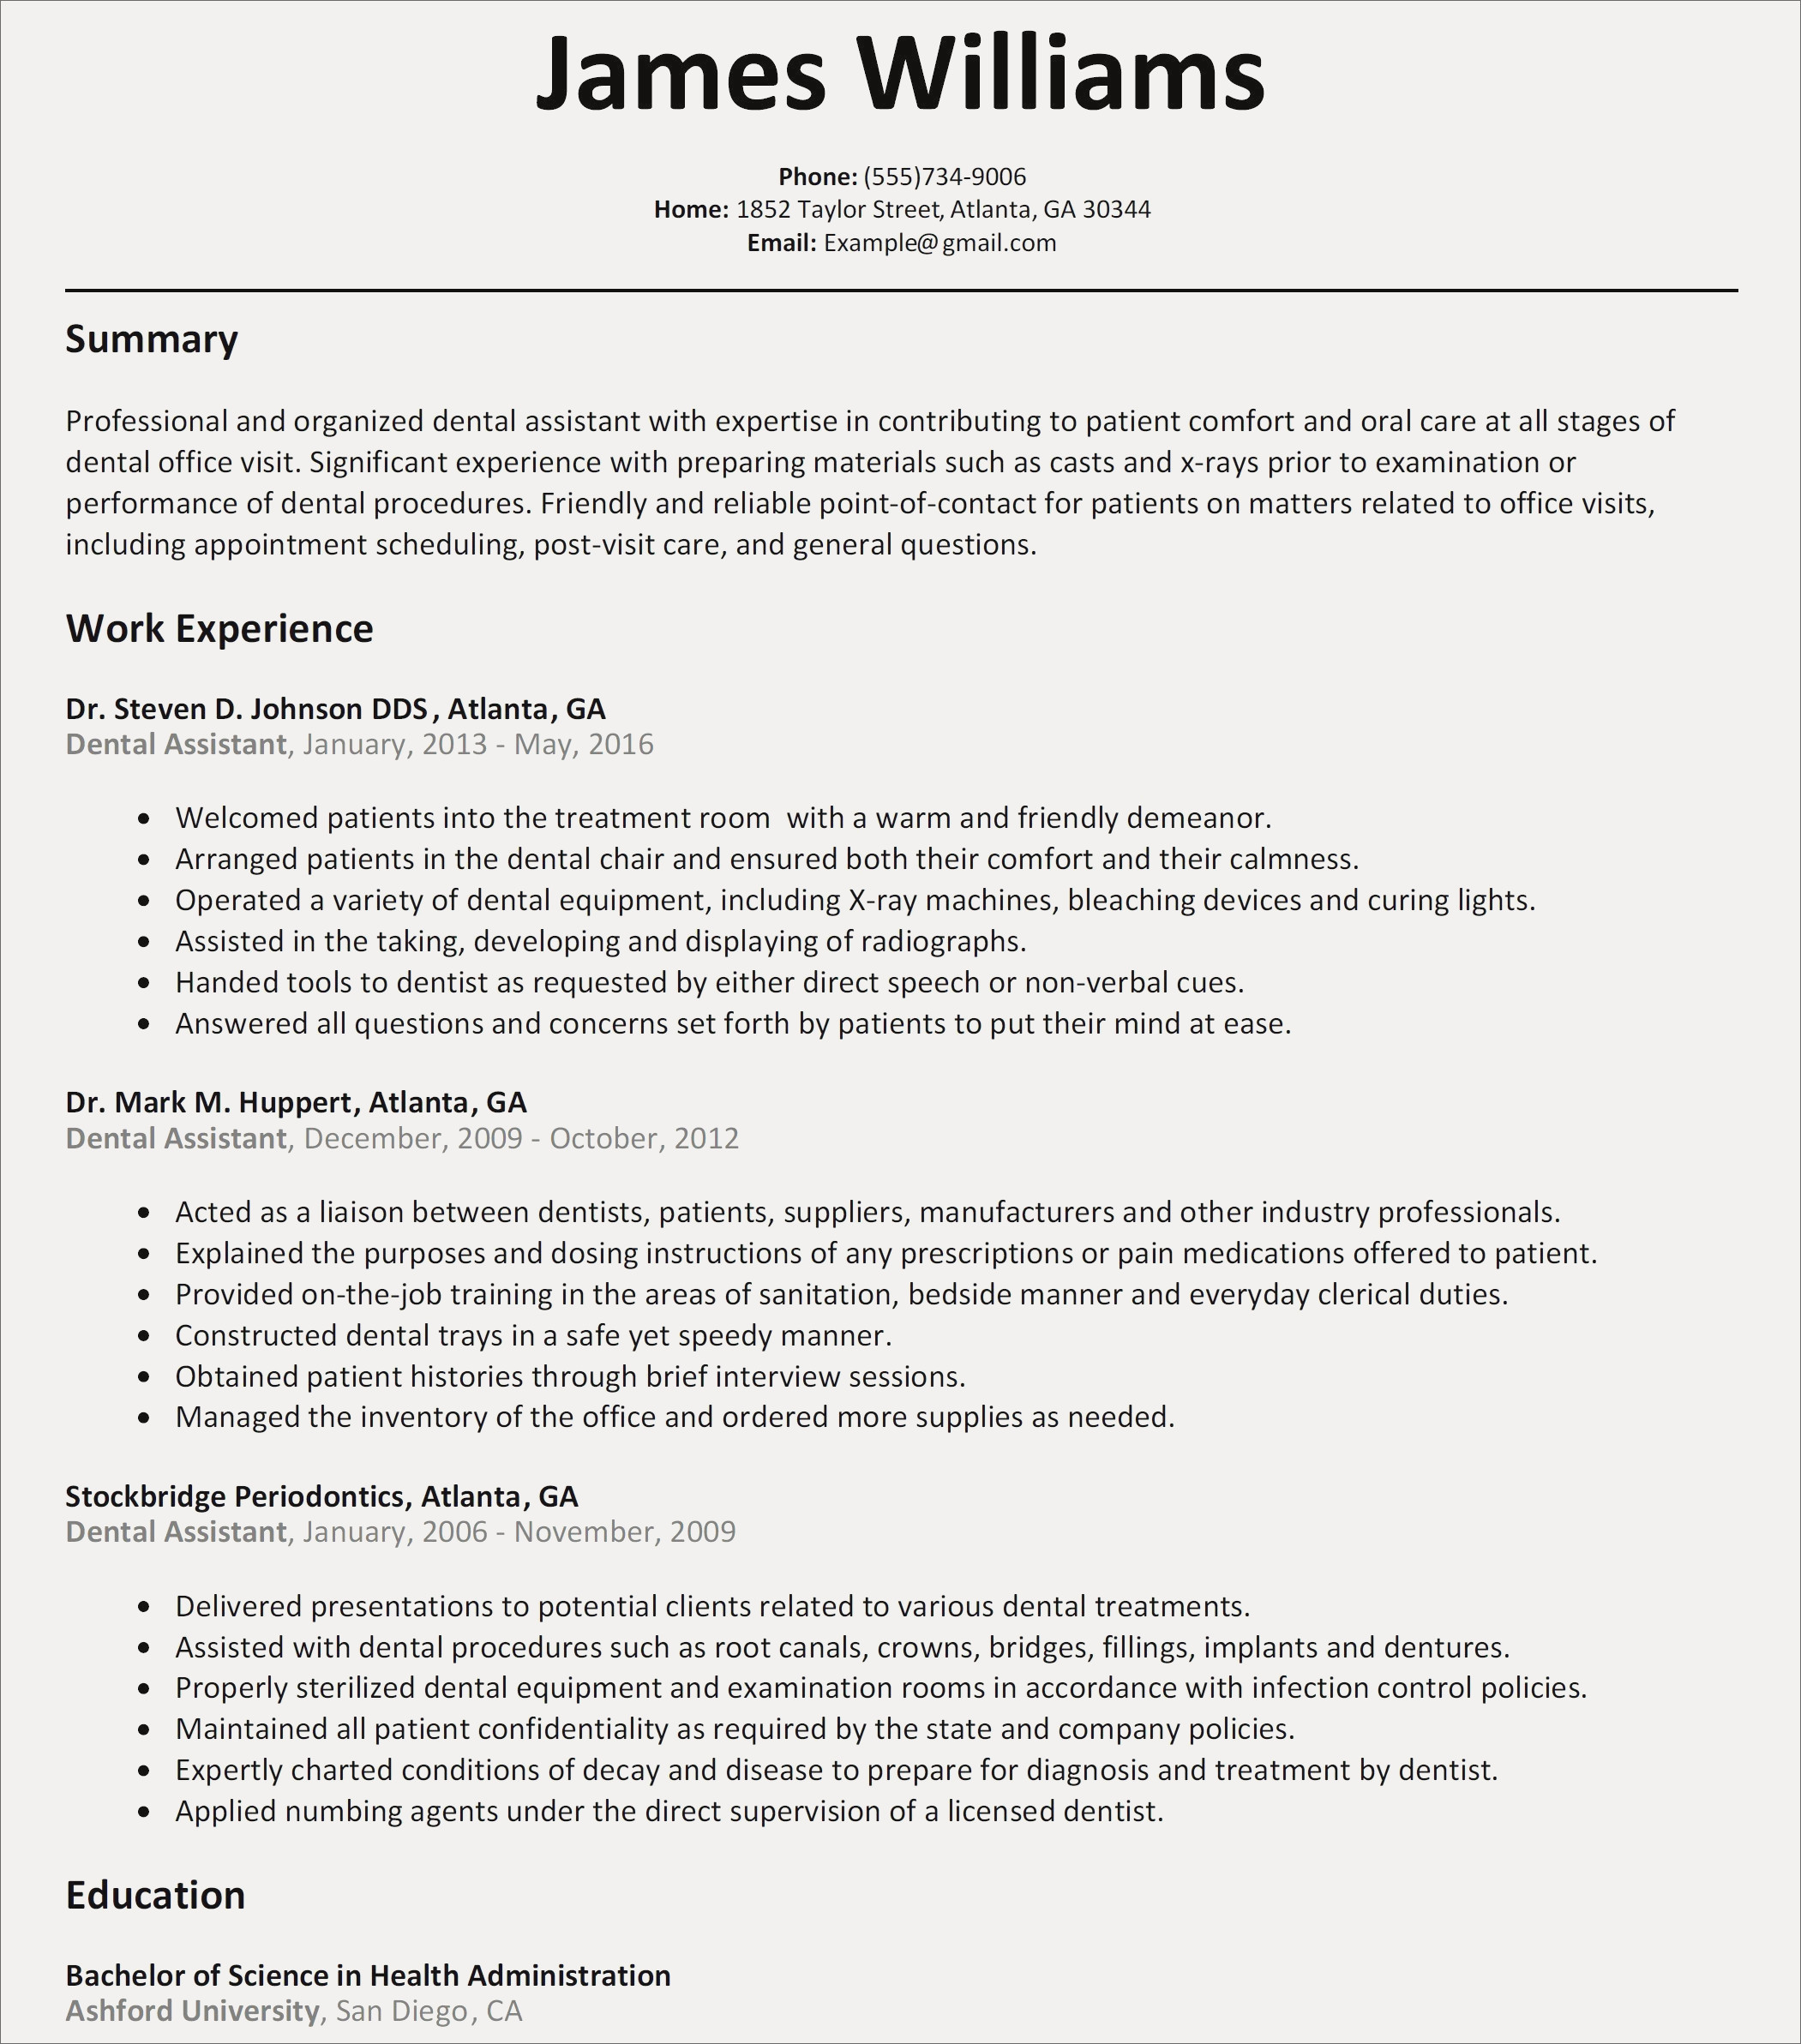 Best Way to Make A Resume - How to Make A Resume Cove Best How to Write A Cover Letter for